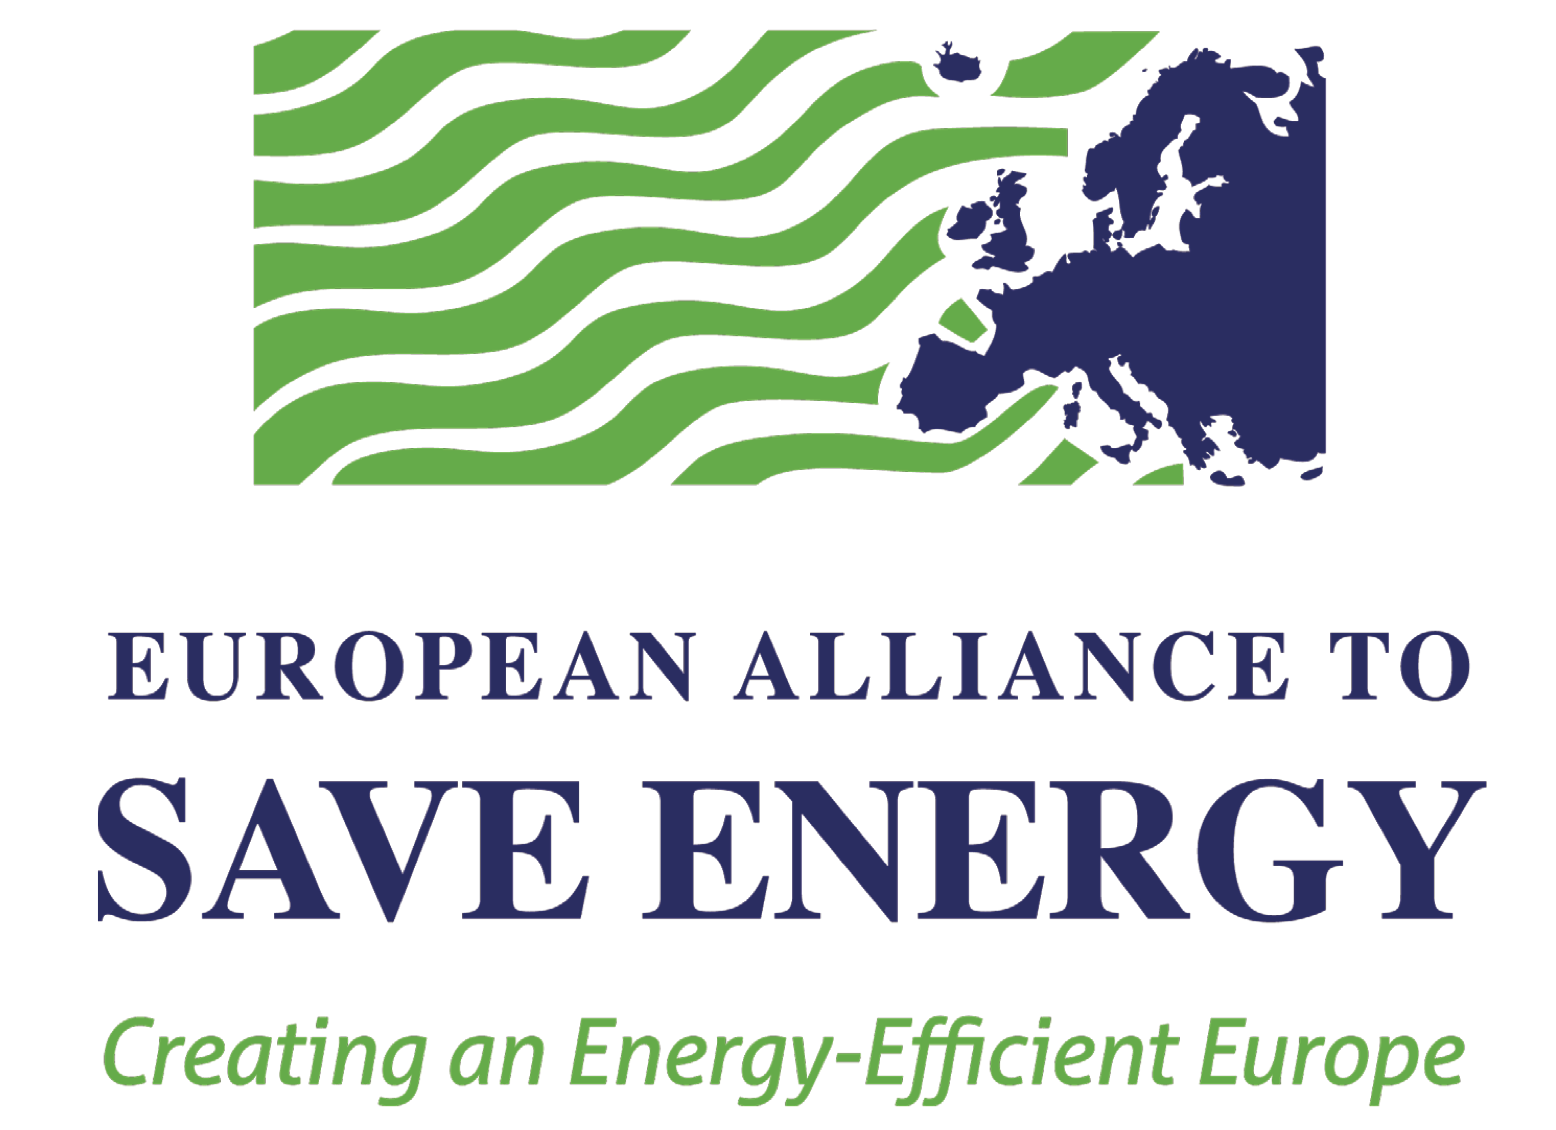 Press Release: EUASE welcomes climate neutrality and energy efficiency in EU climate law, but regrets lack of engagement on  2030 target